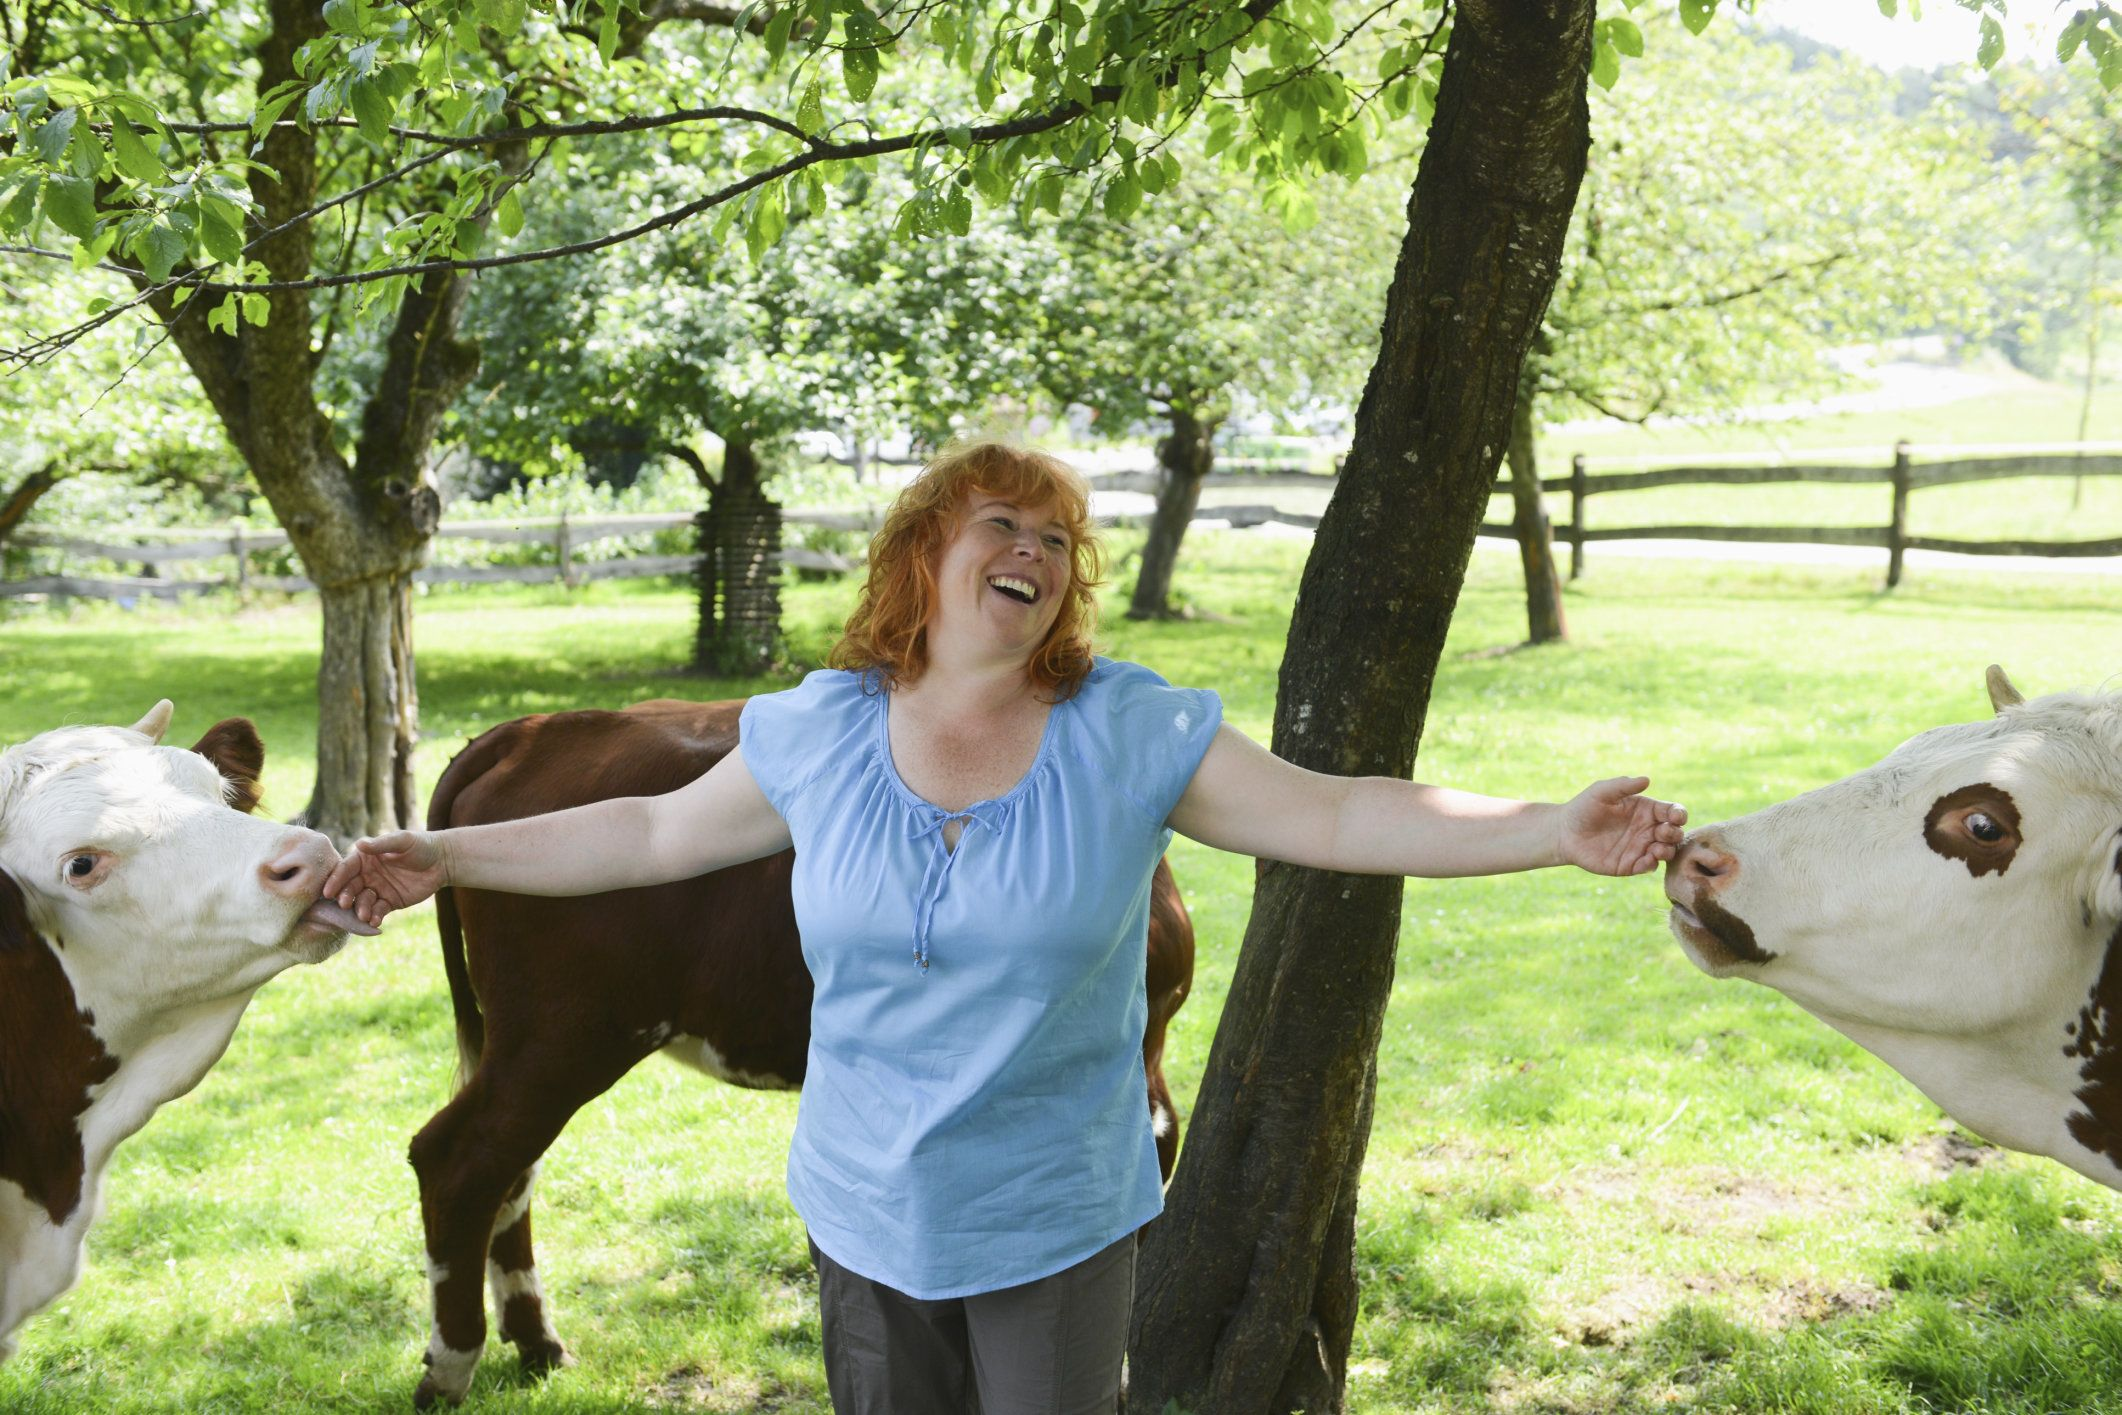 Mature woman with cattle on farm, smiling